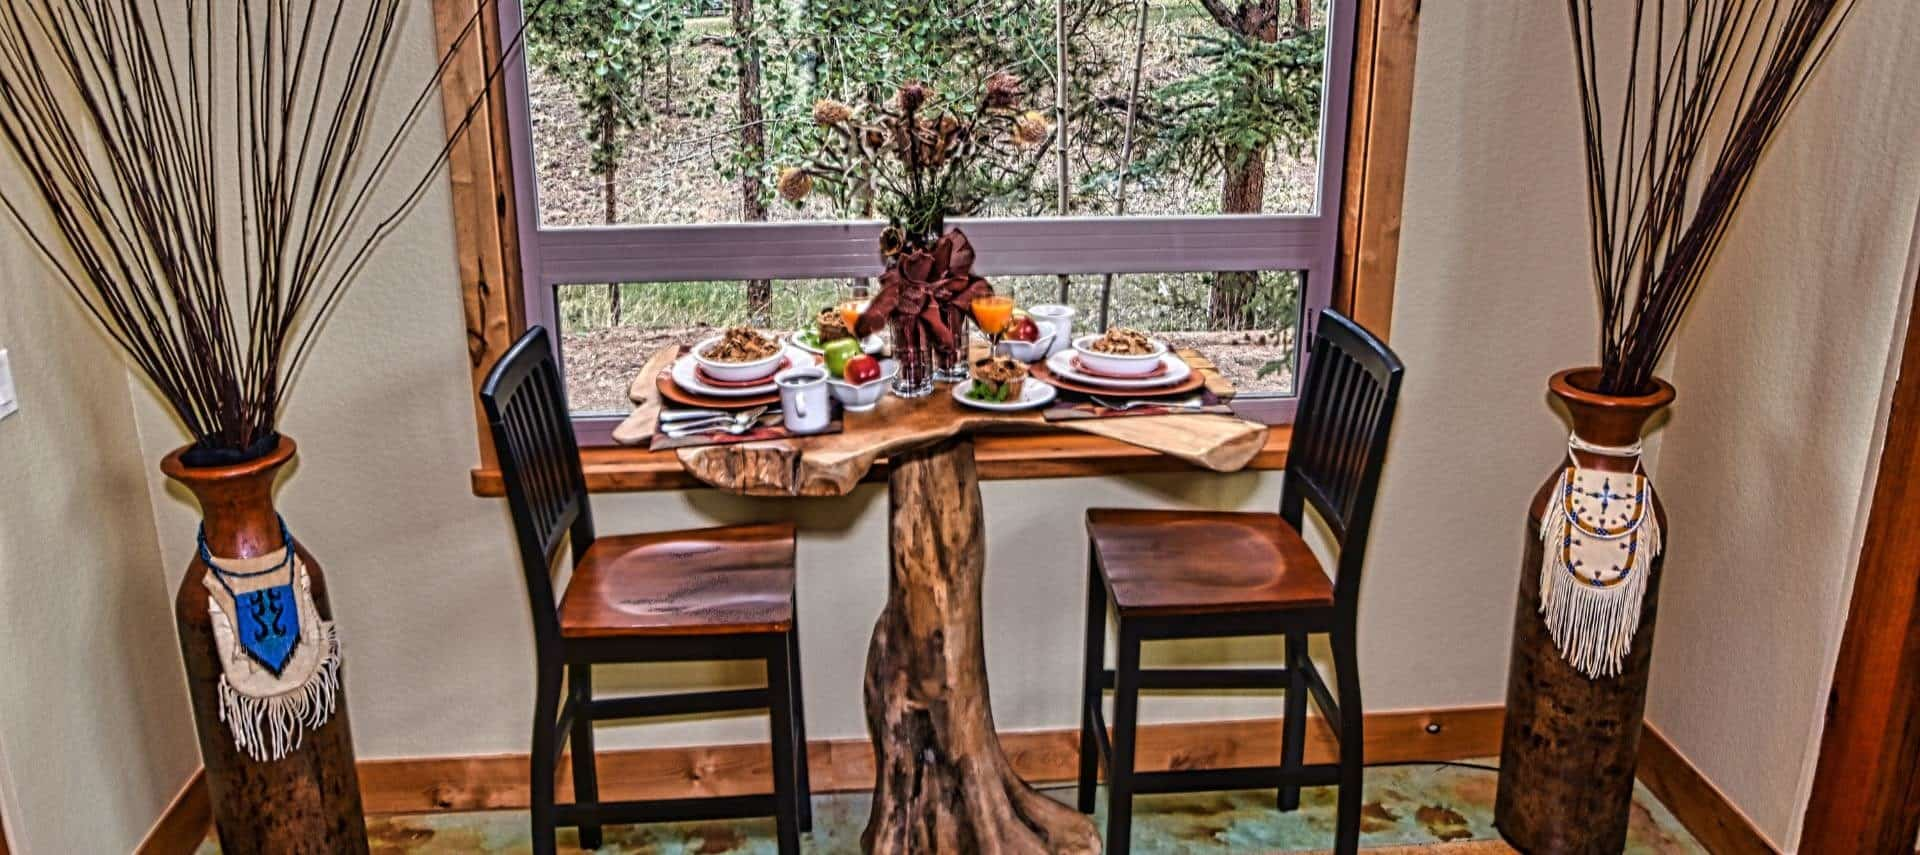 Two wooden chairs and a table made of reclaimed wood set with dishes full of breakfast items near large window with view to outside